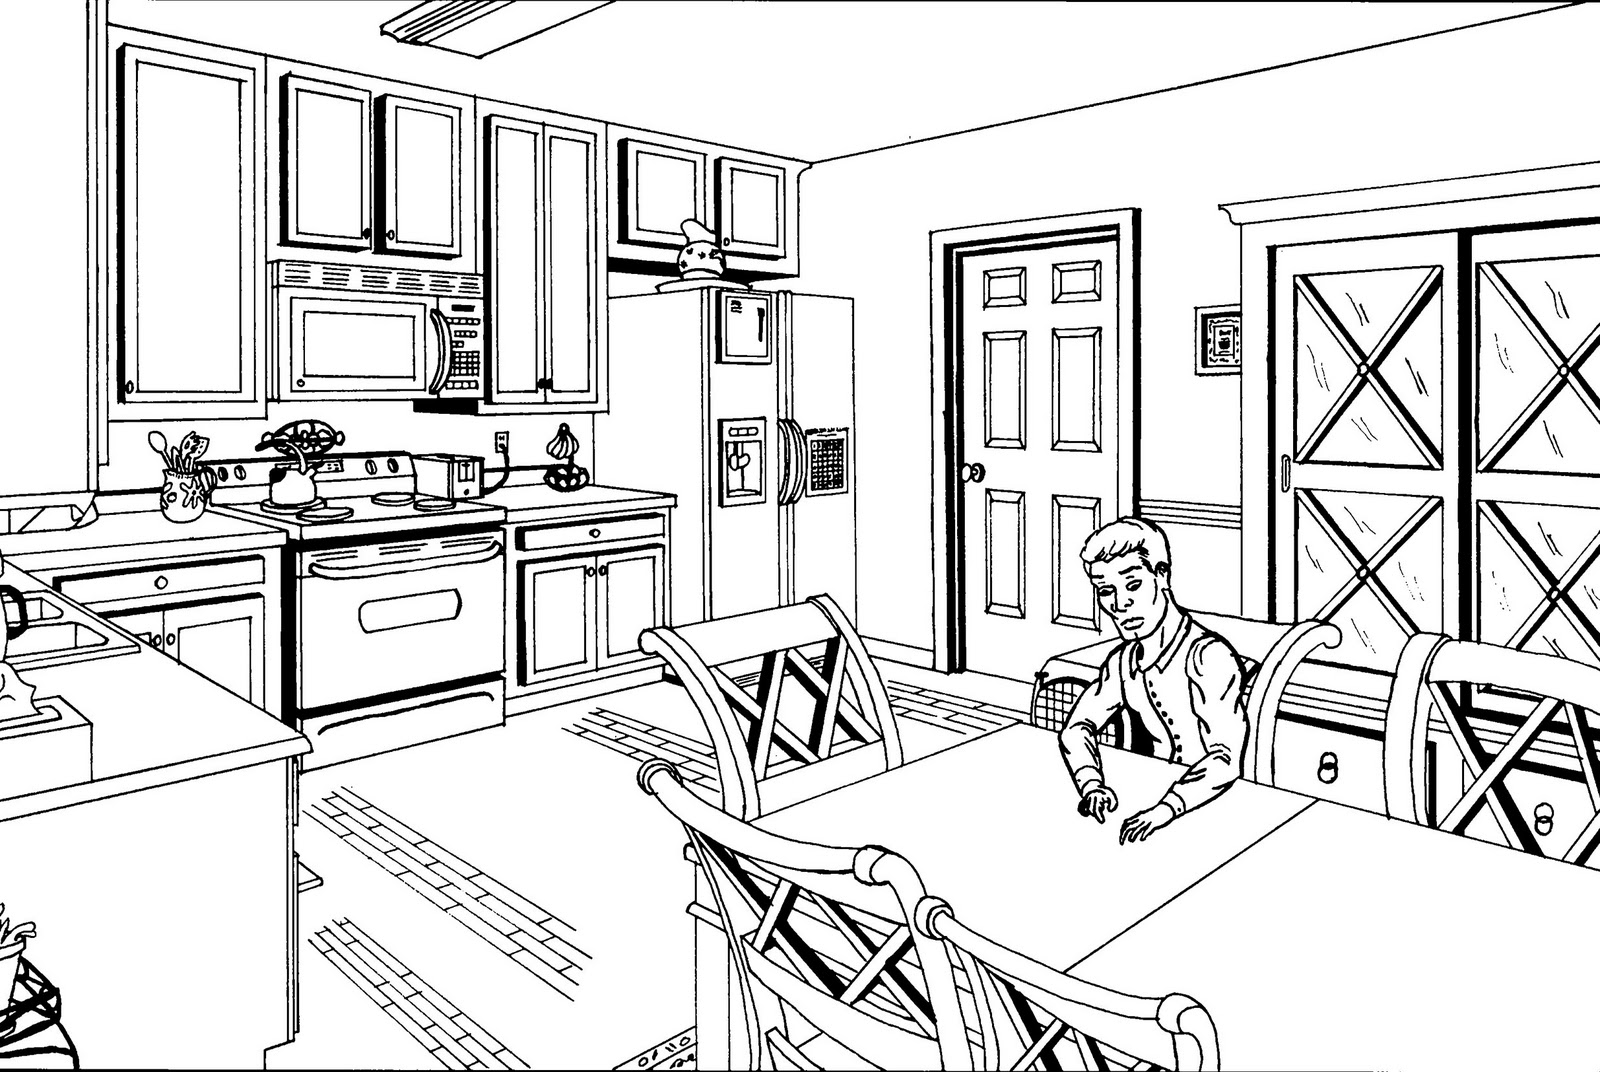 My Kitchen in Two Point Perspective  The Boiling Teapot January 2012. 2 Point Perspective Room Interior